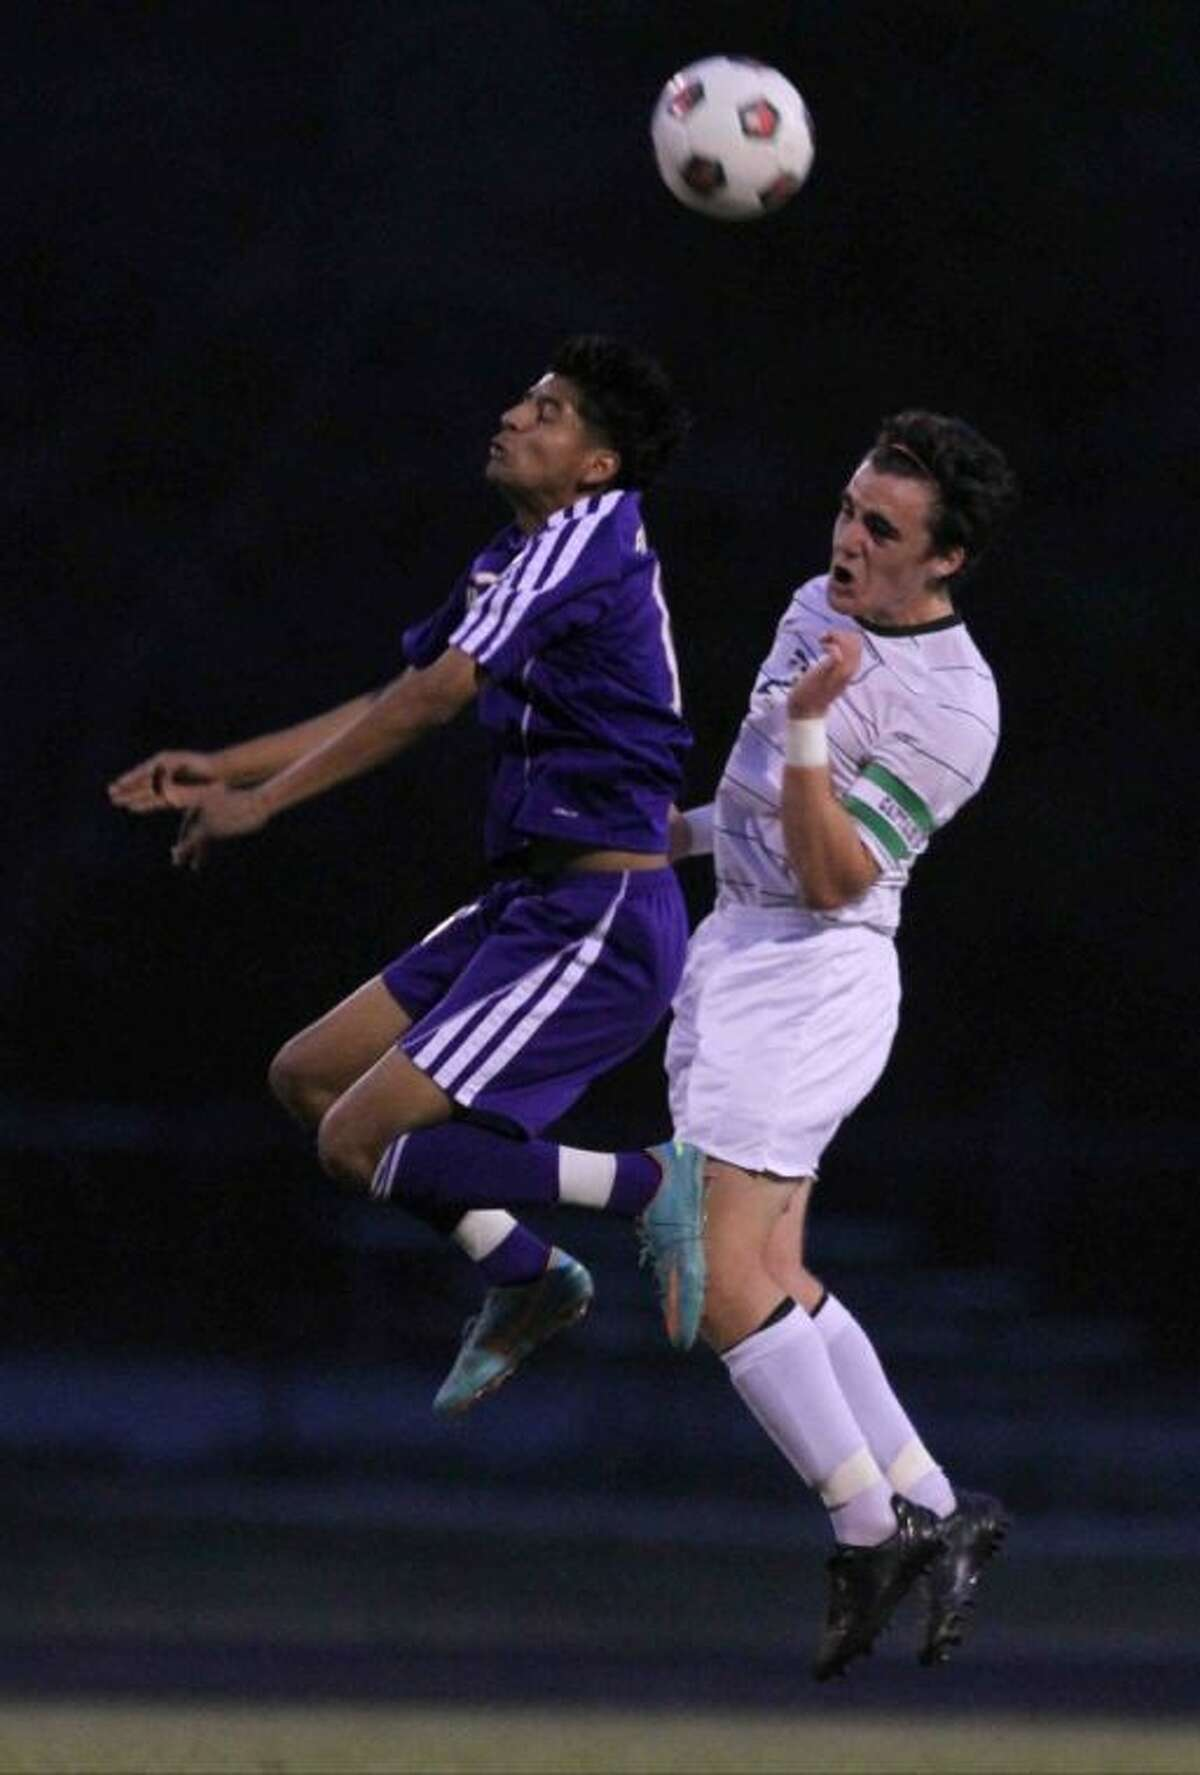 The Woodlands midfielder Vincent Miller goes up for a header during Friday's match against Lufkin at The Woodlands High School. To view or purchase this photo and others like it, visit HCNpics.com.